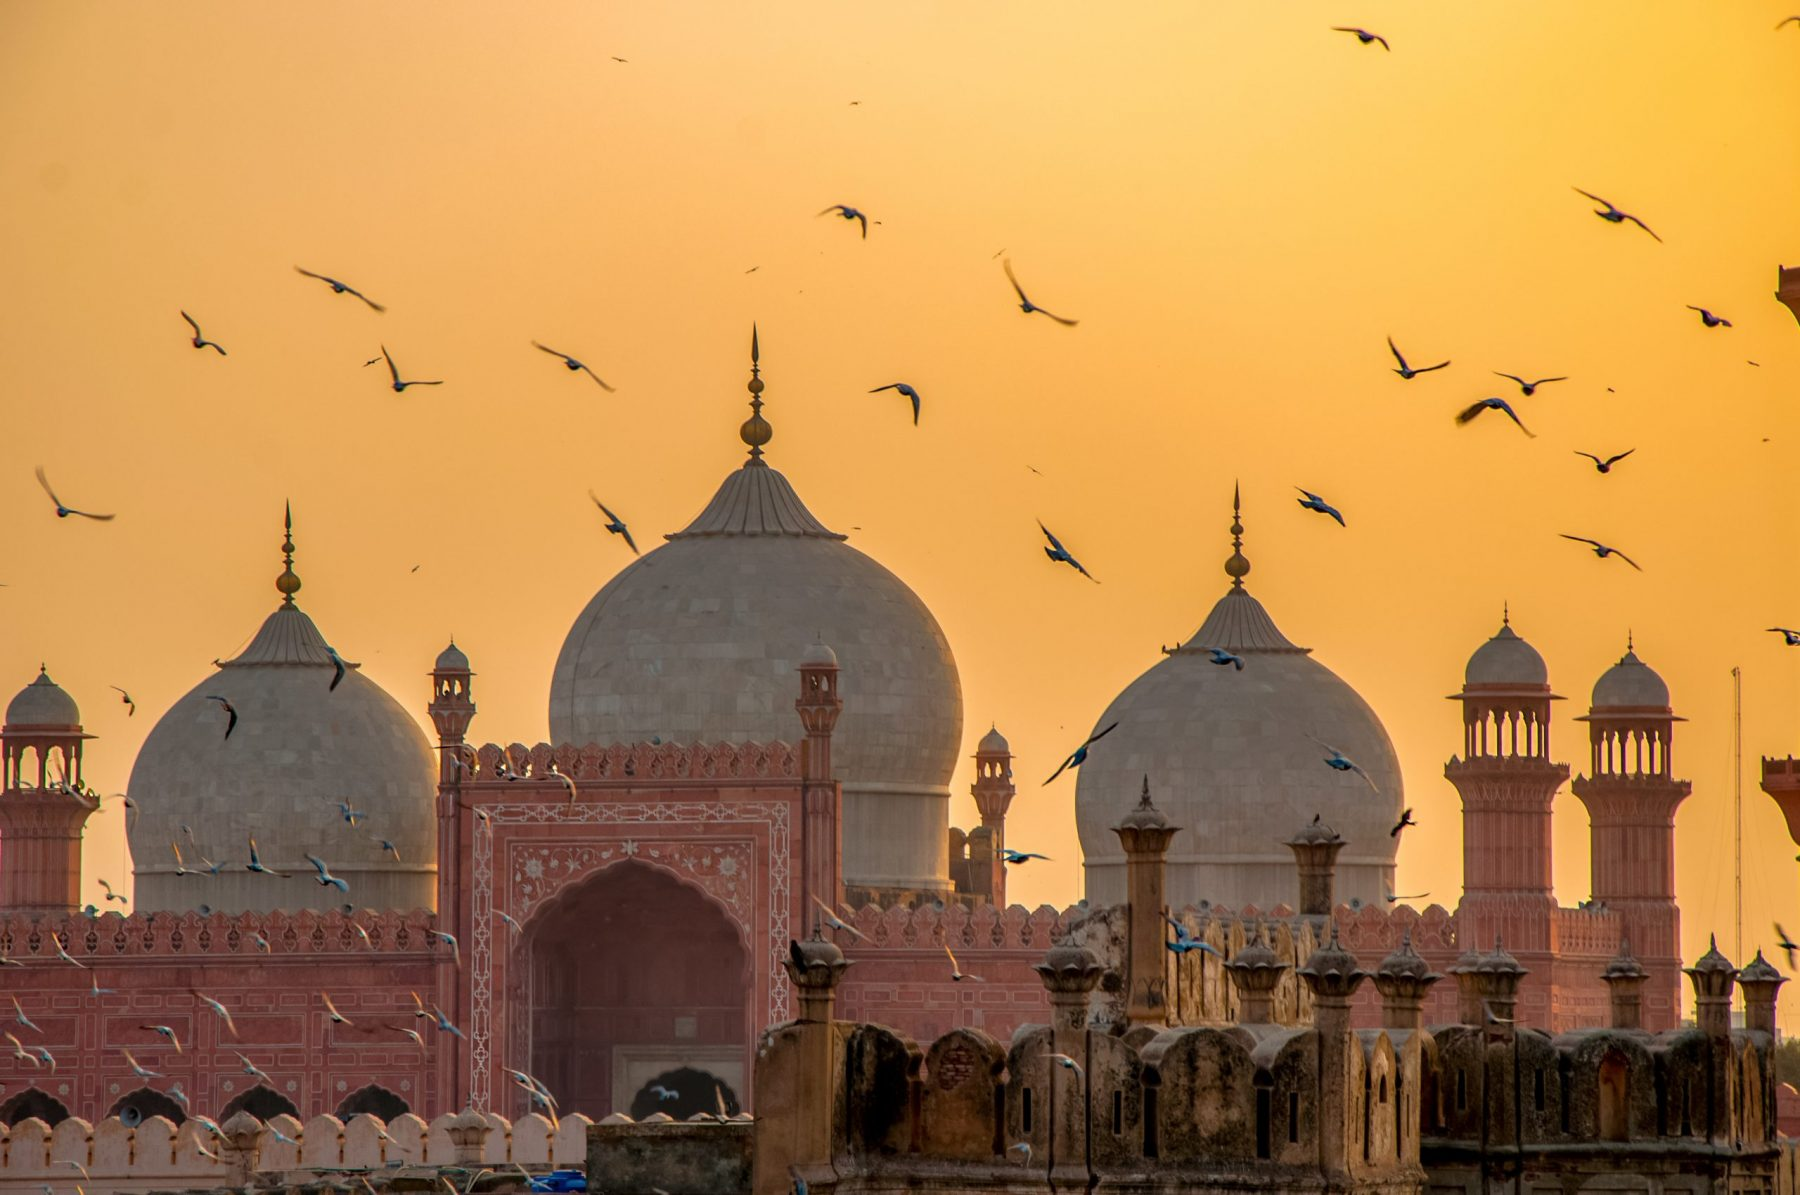 red sandstone walls of badshahi mosque at sunset